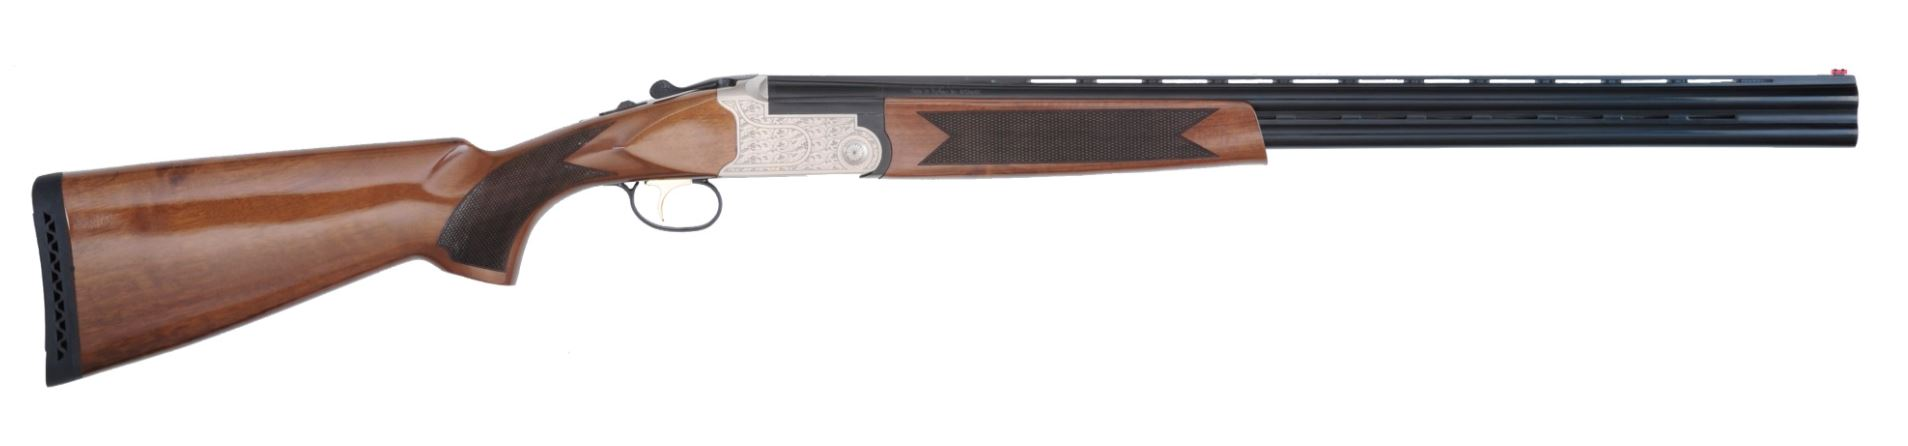 TriStar Sporting Arms Setter S/T 20 Gauge